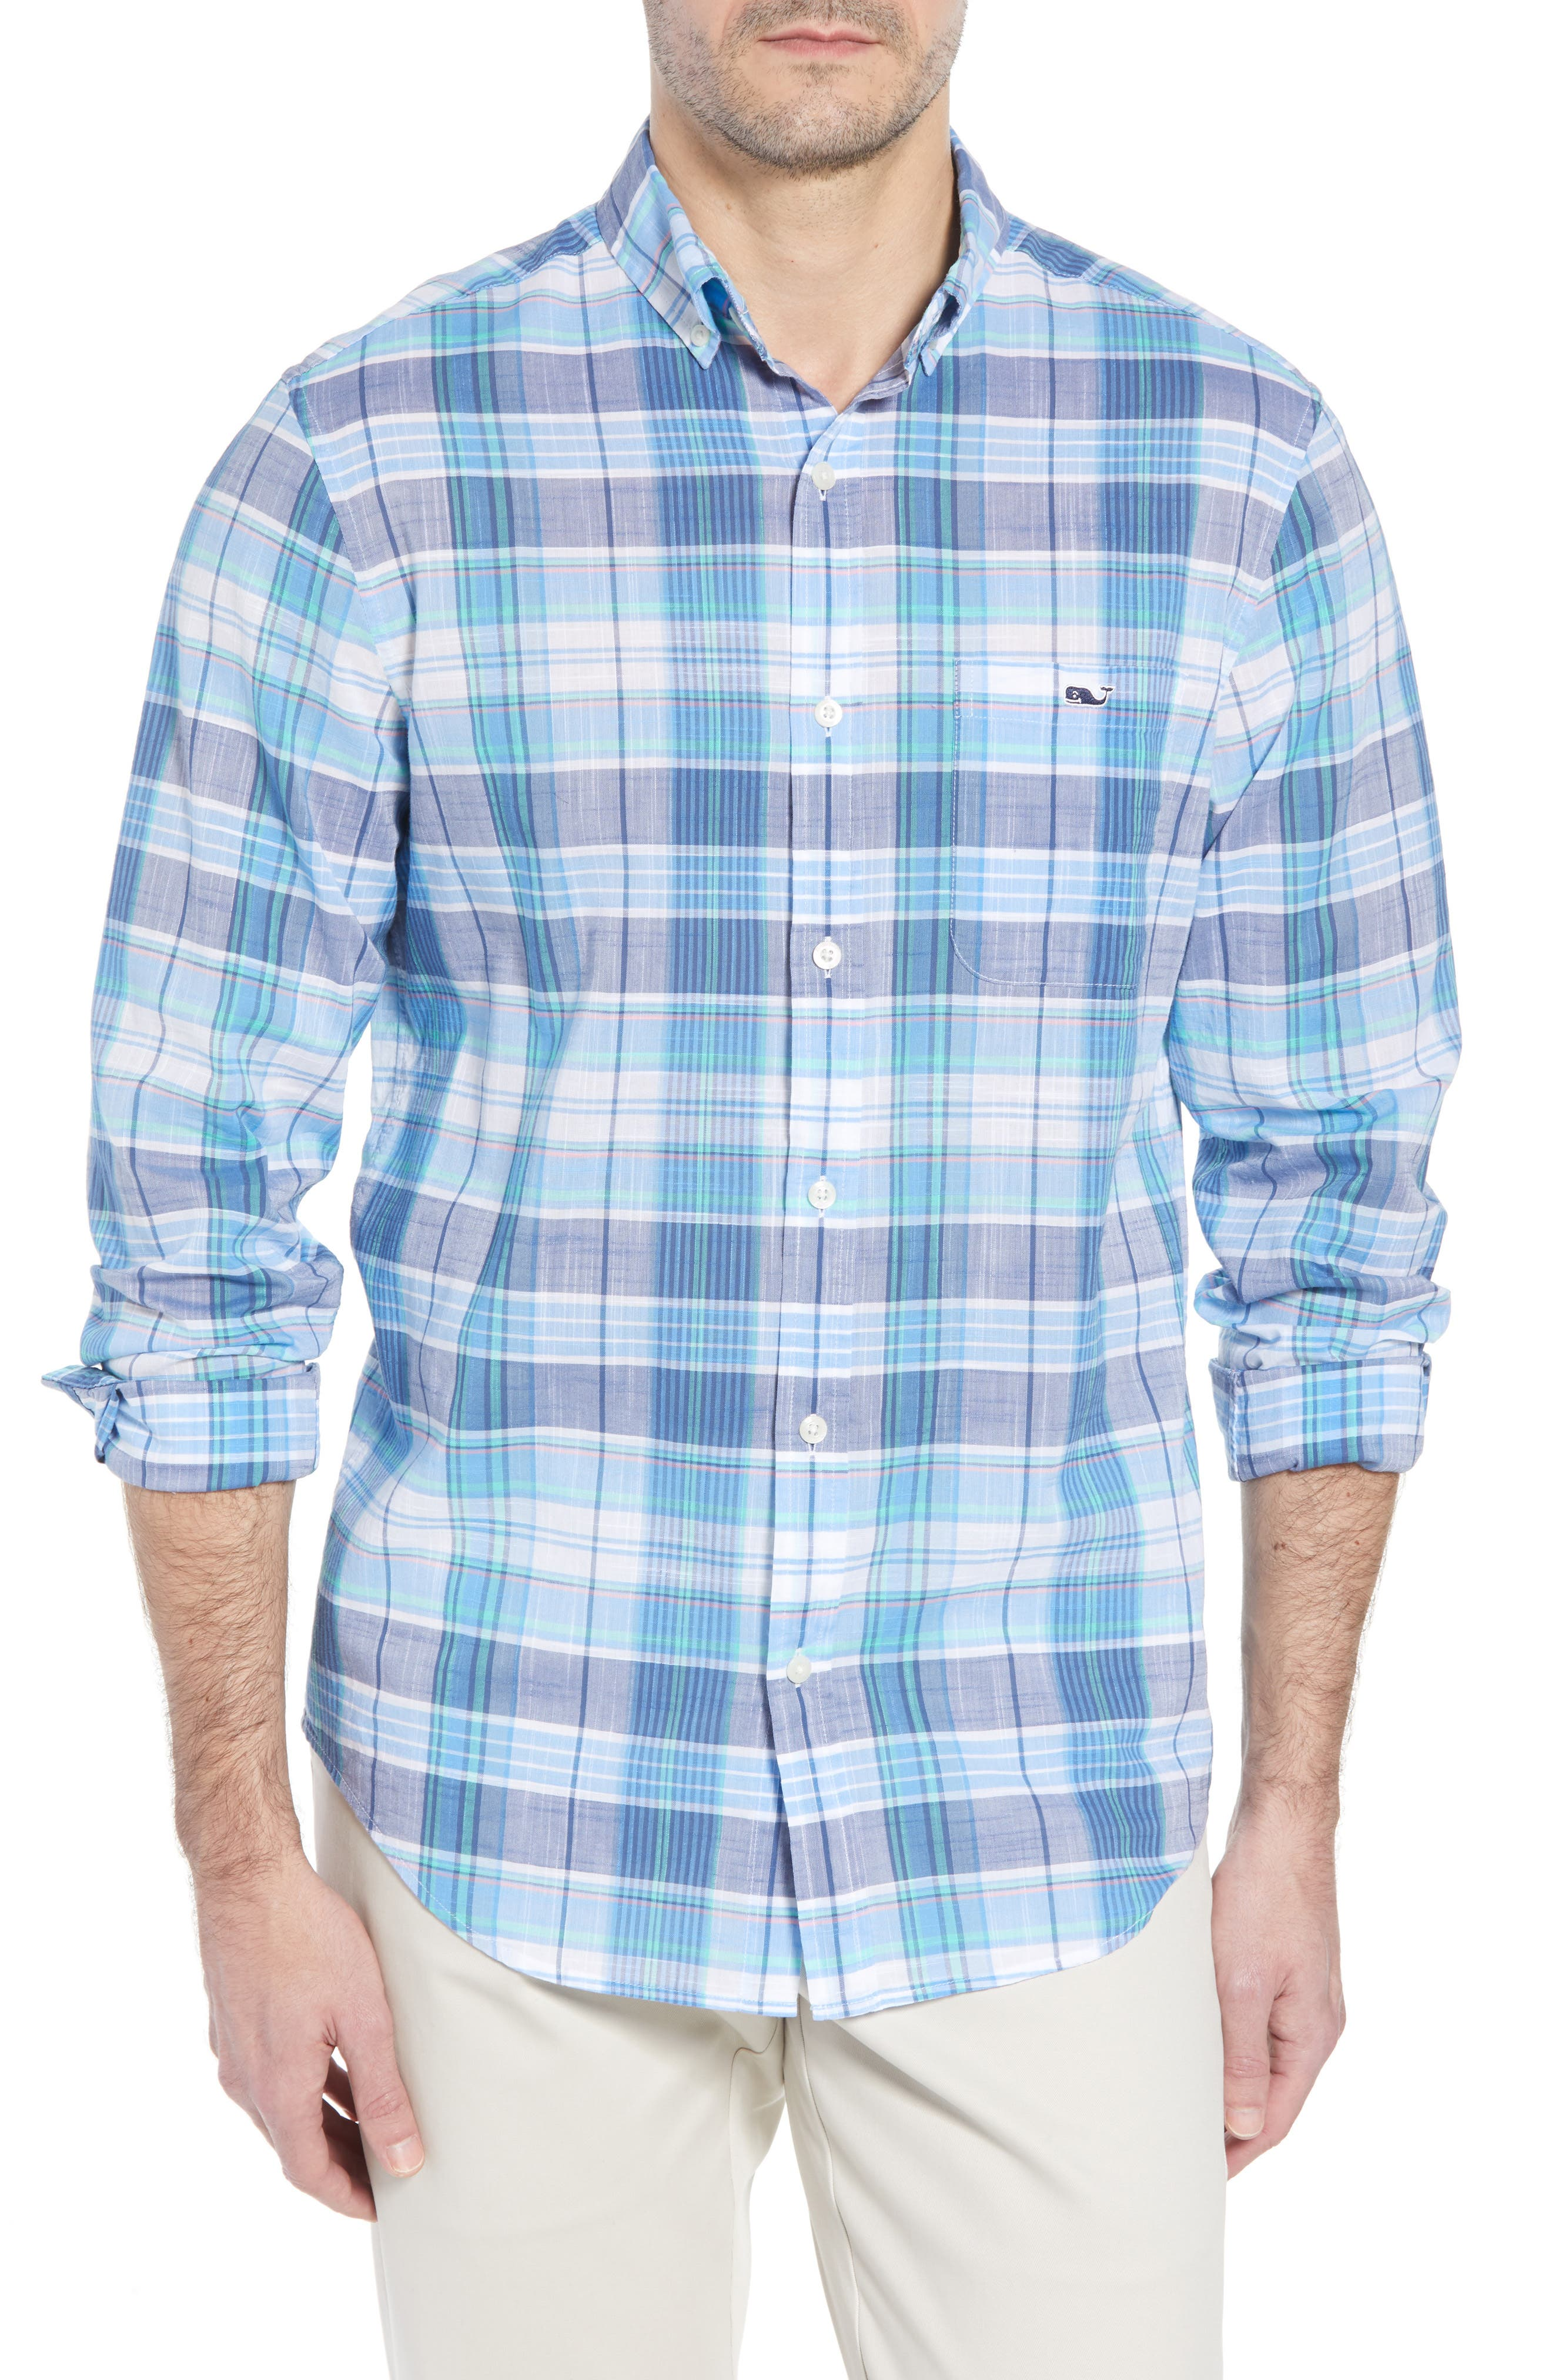 Smith Point Tucker Classic Fit Plaid Sport Shirt,                         Main,                         color, 461